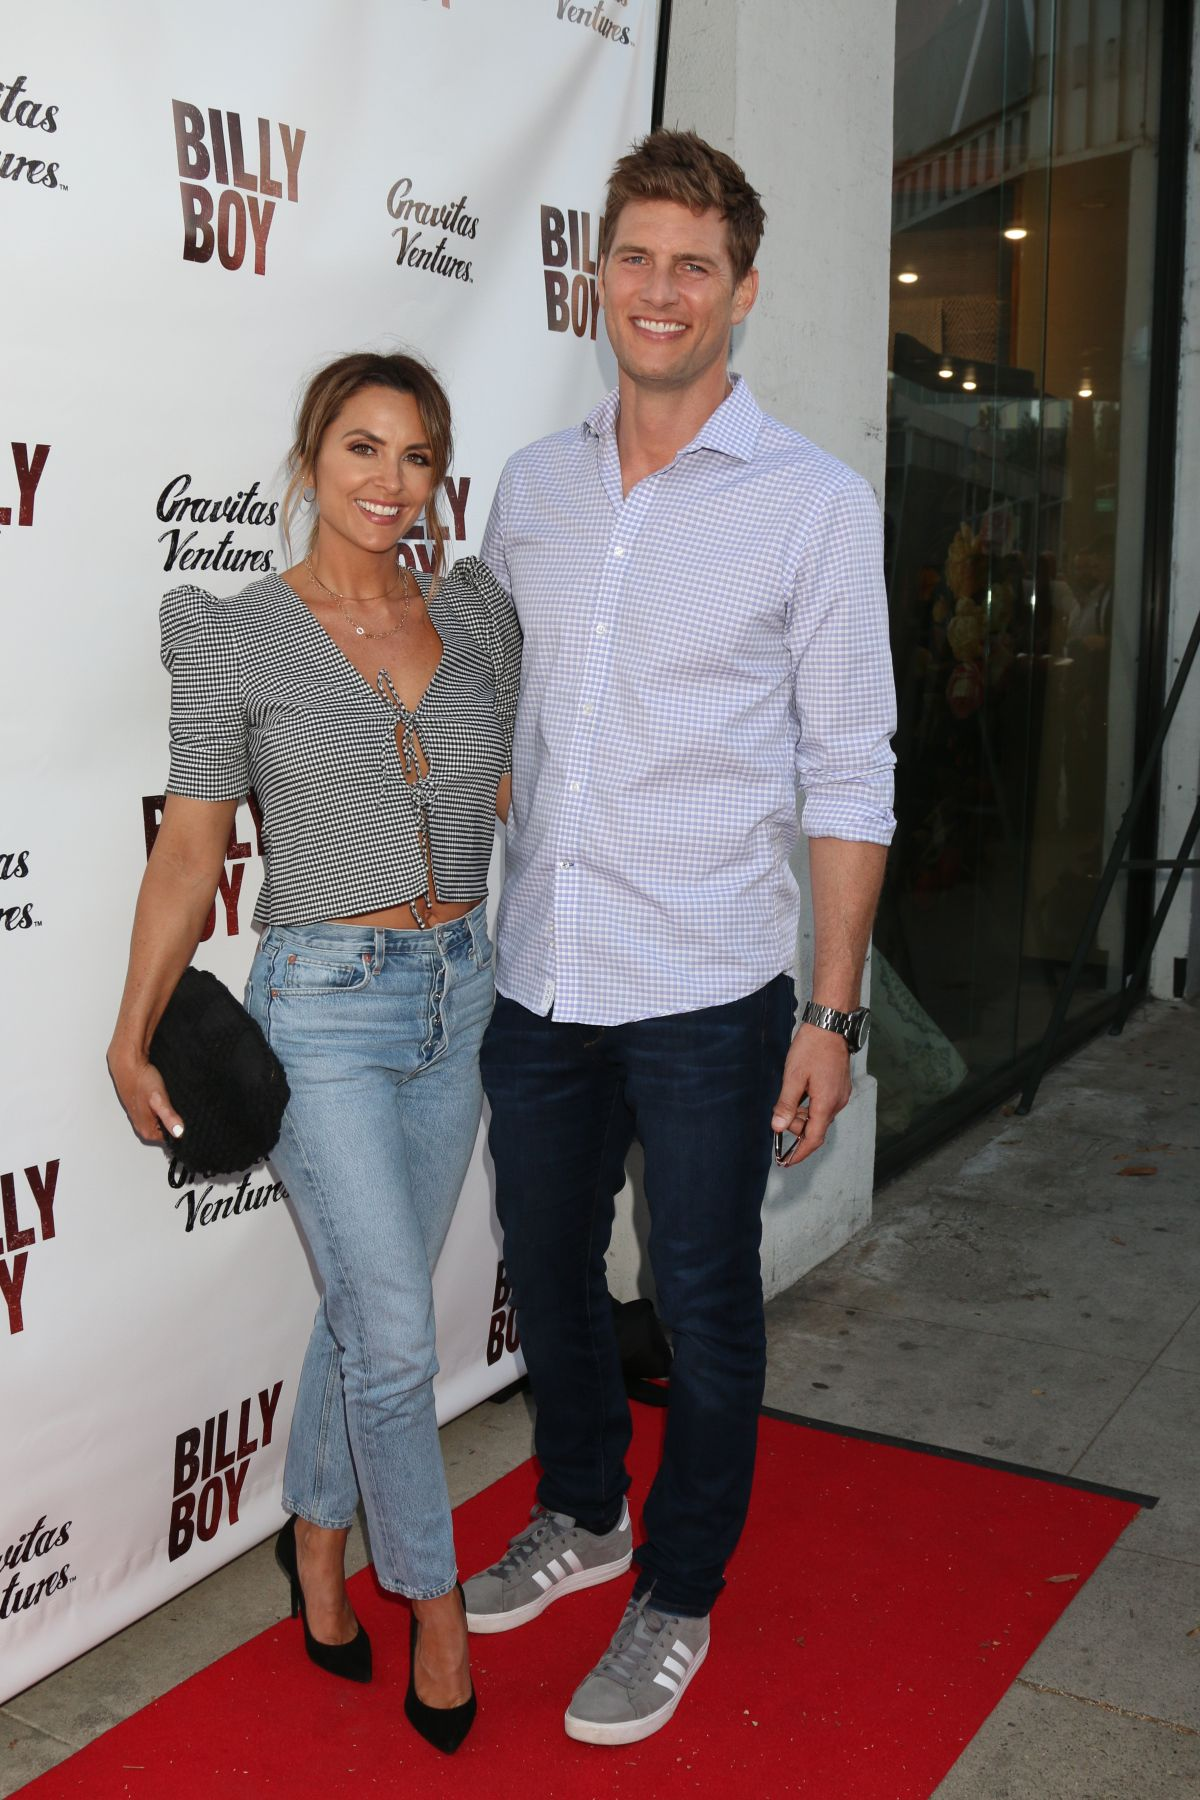 Danielle kirlin at billy boy los angeles premiere at the for Danielle kirlin